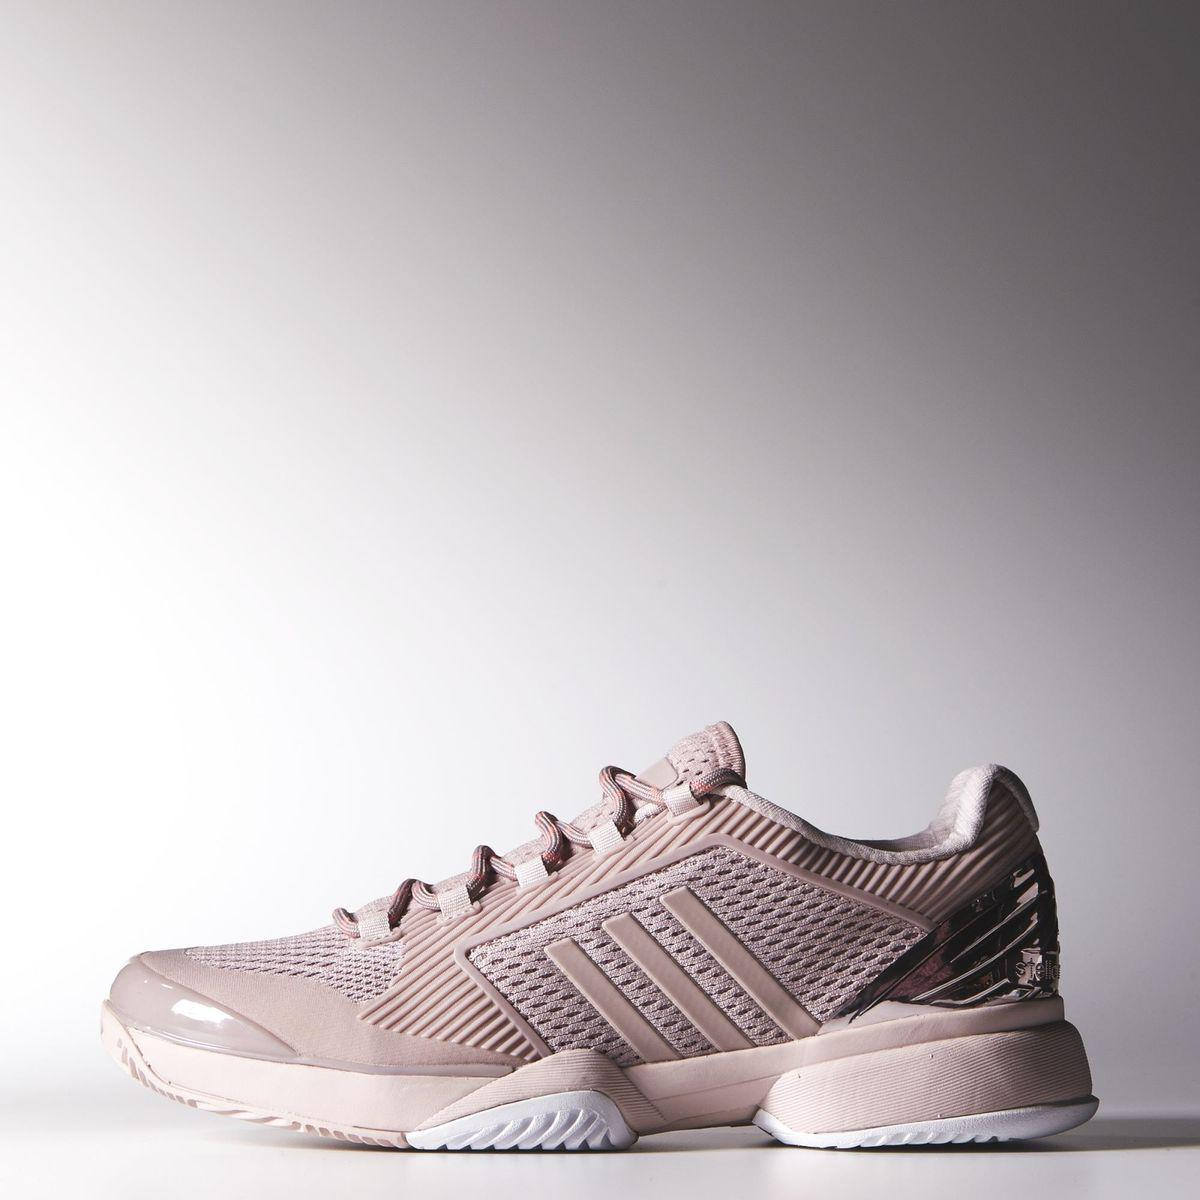 Adidas Womens Stella McCartney Barricade 2015 Tennis Shoes - Light Pink -  Tennisnuts.com 45ef193b39